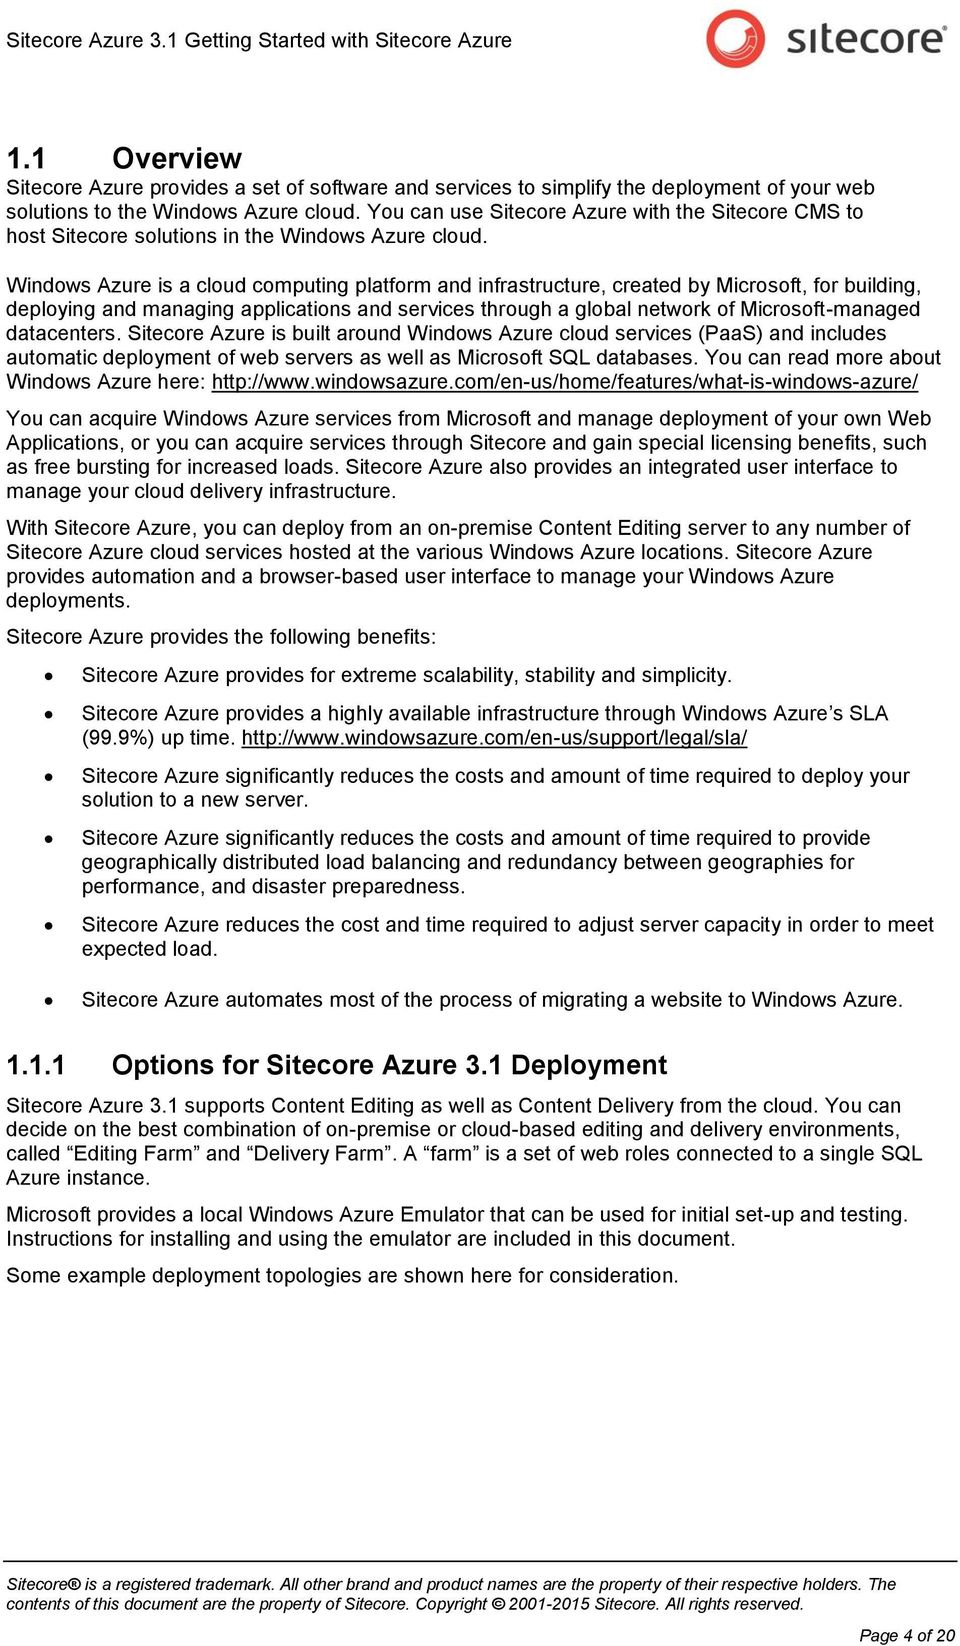 Getting Started with Sitecore Azure - PDF